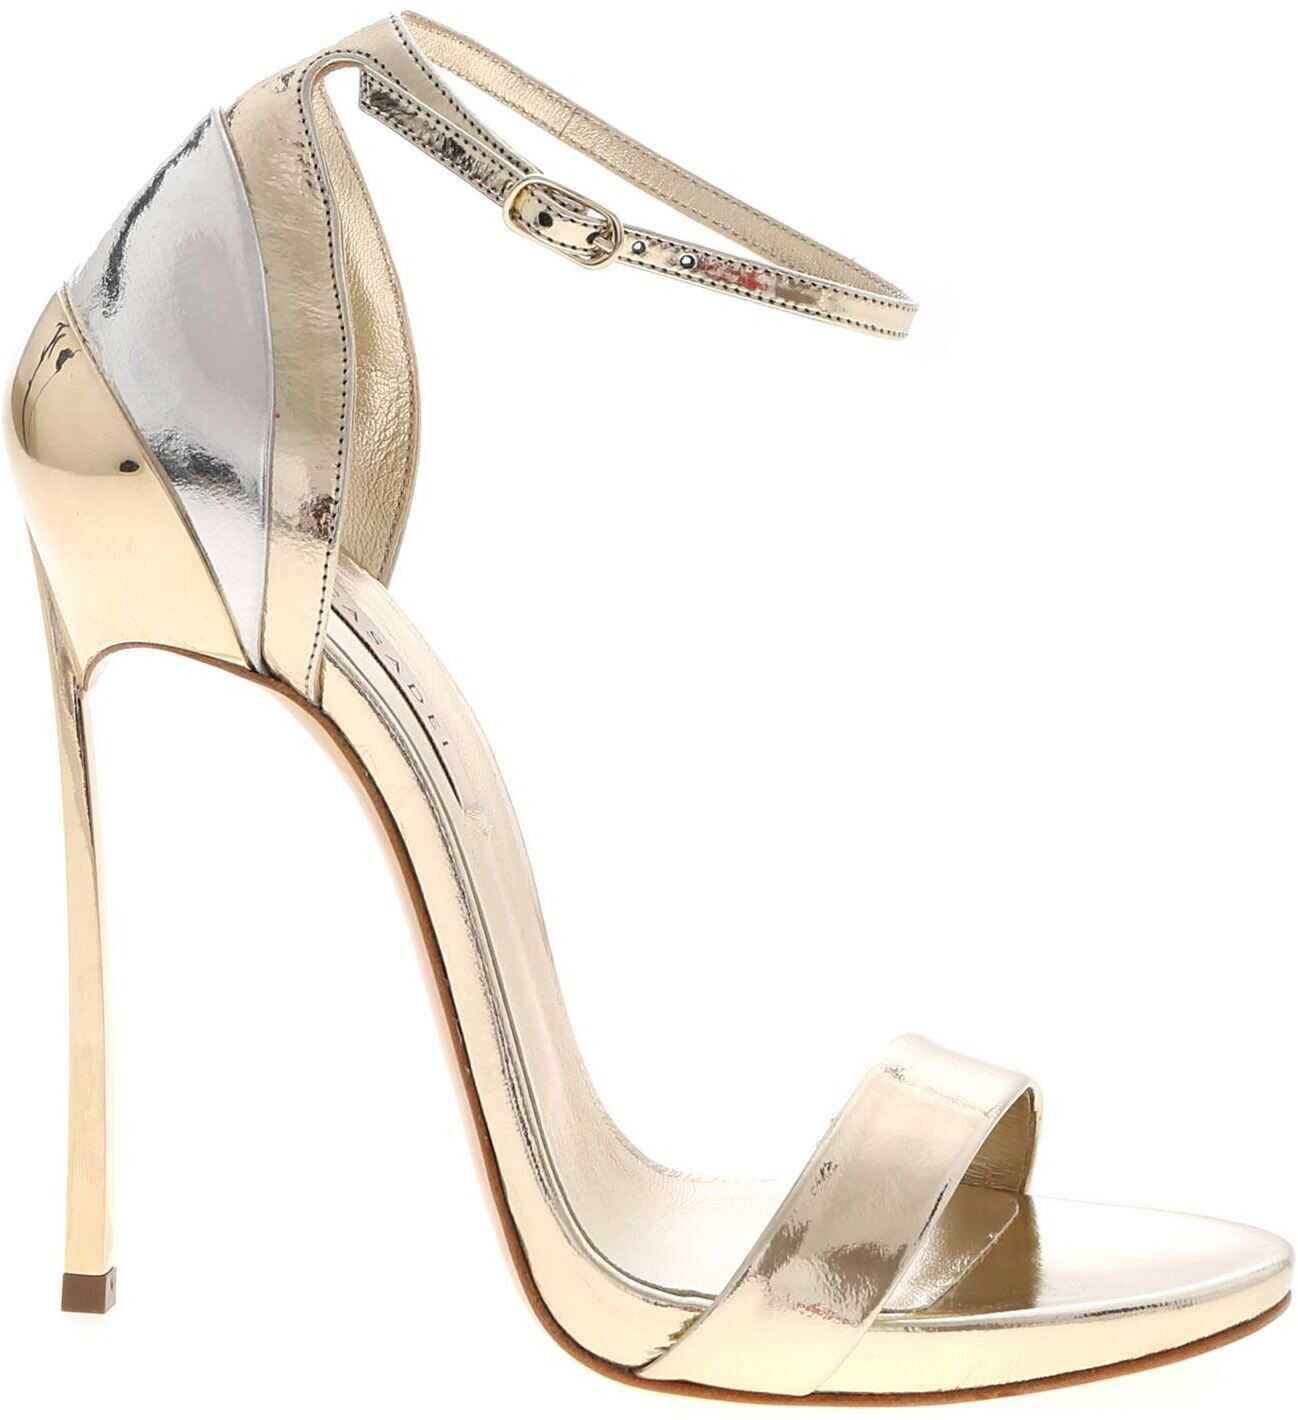 Casadei Visione Sandals In Platinum Color Gold